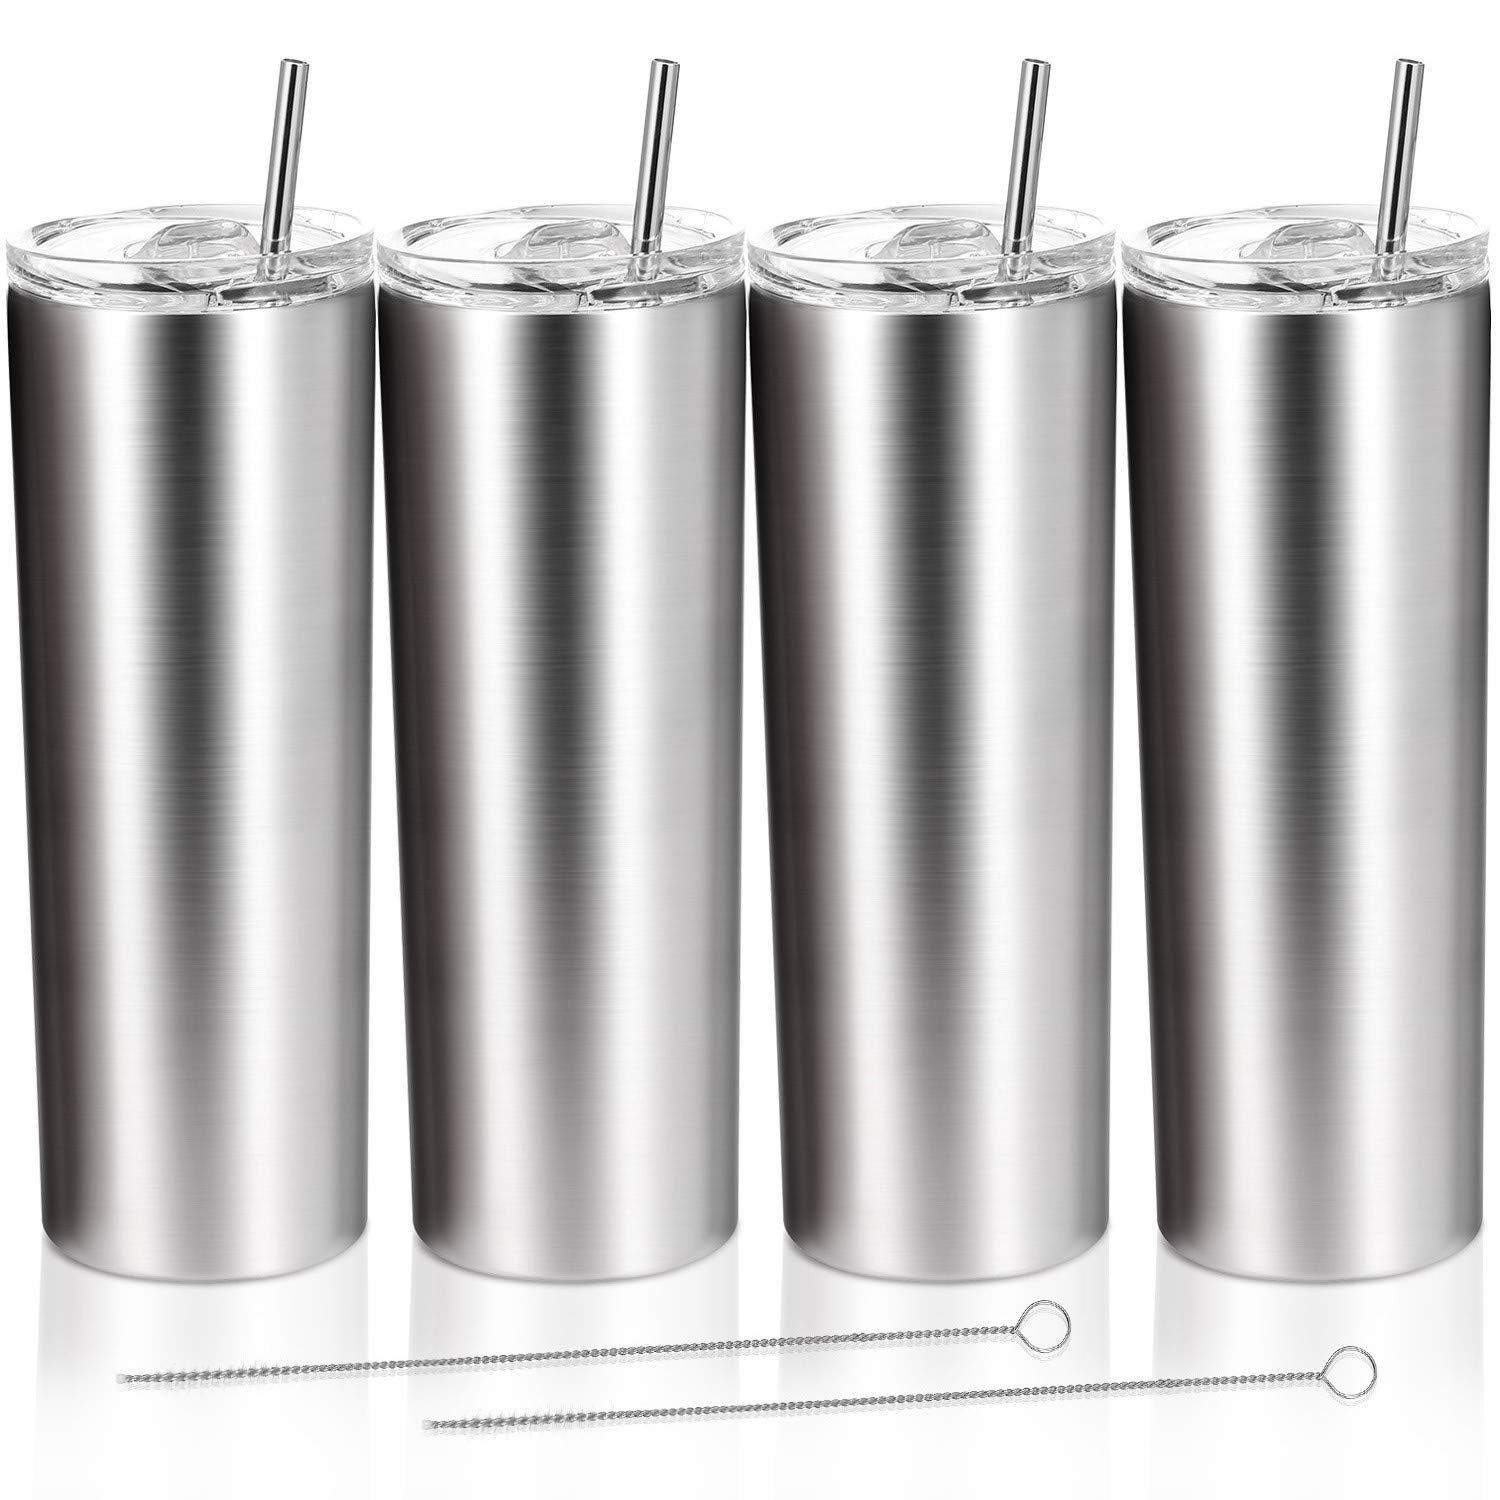 4 Pack Classic Tumbler 20 oz Stainless Steel Double-Insulated Water Tumbler Cup With Lid and Straw Vacuum Travel Mug Gift for Men and Women With Cleaning Brush (Stainless)